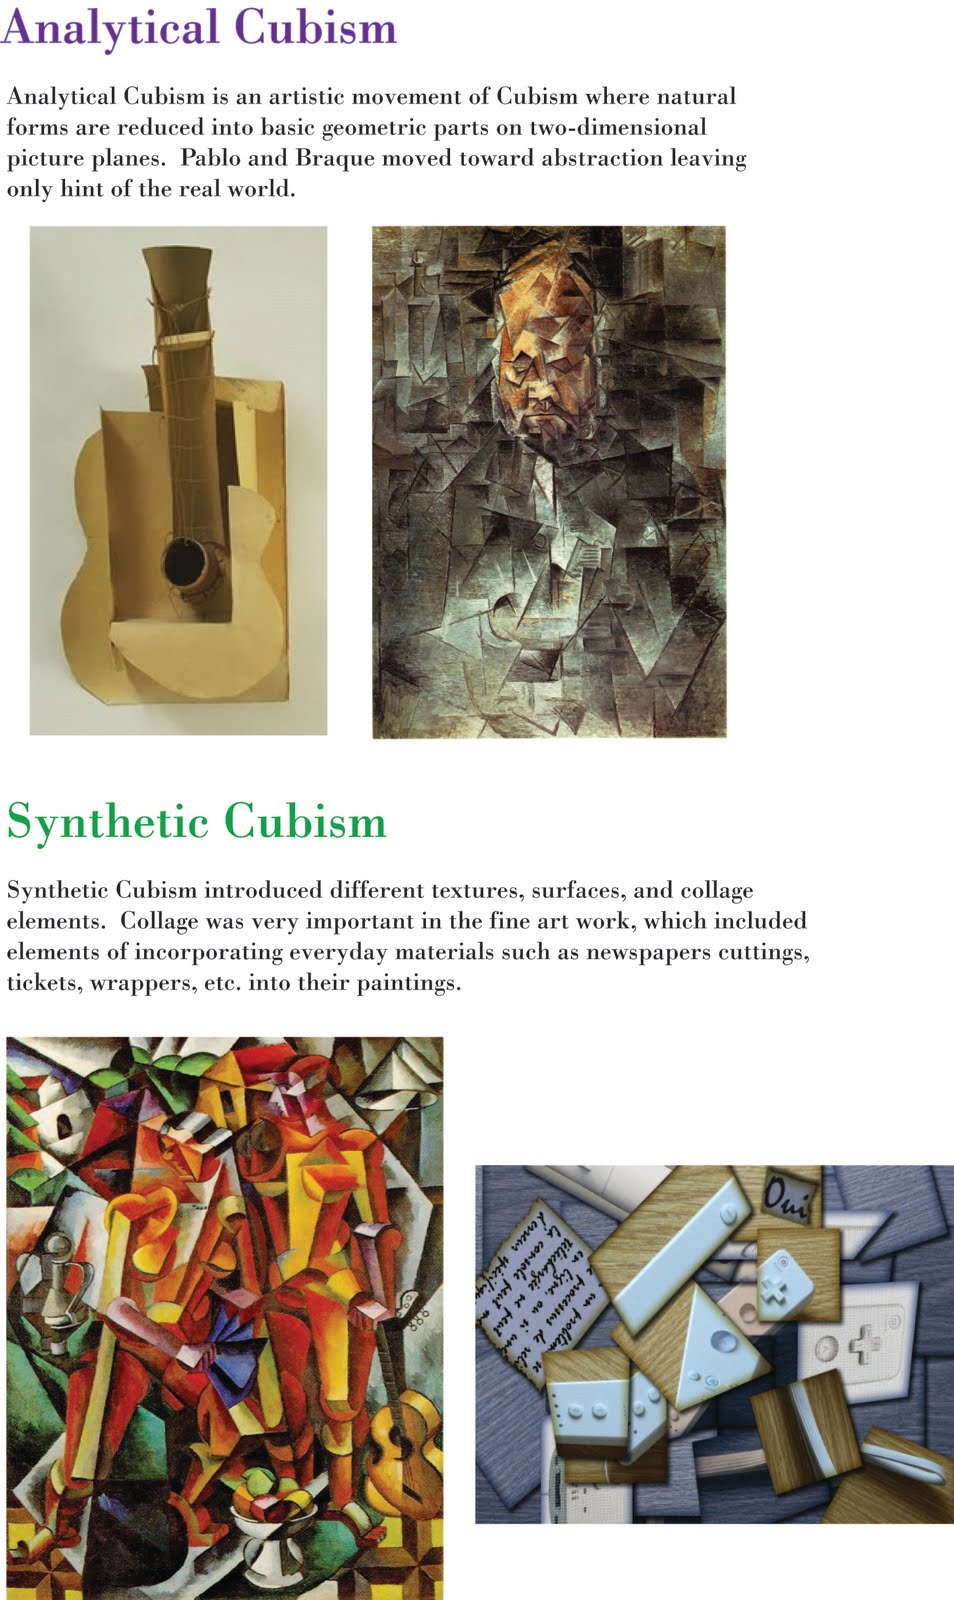 analytical cubism essay The analytical phase of cubism involved, despite forms still remaining legible,  the breaking of closed form, and the incorporation of illusionism.